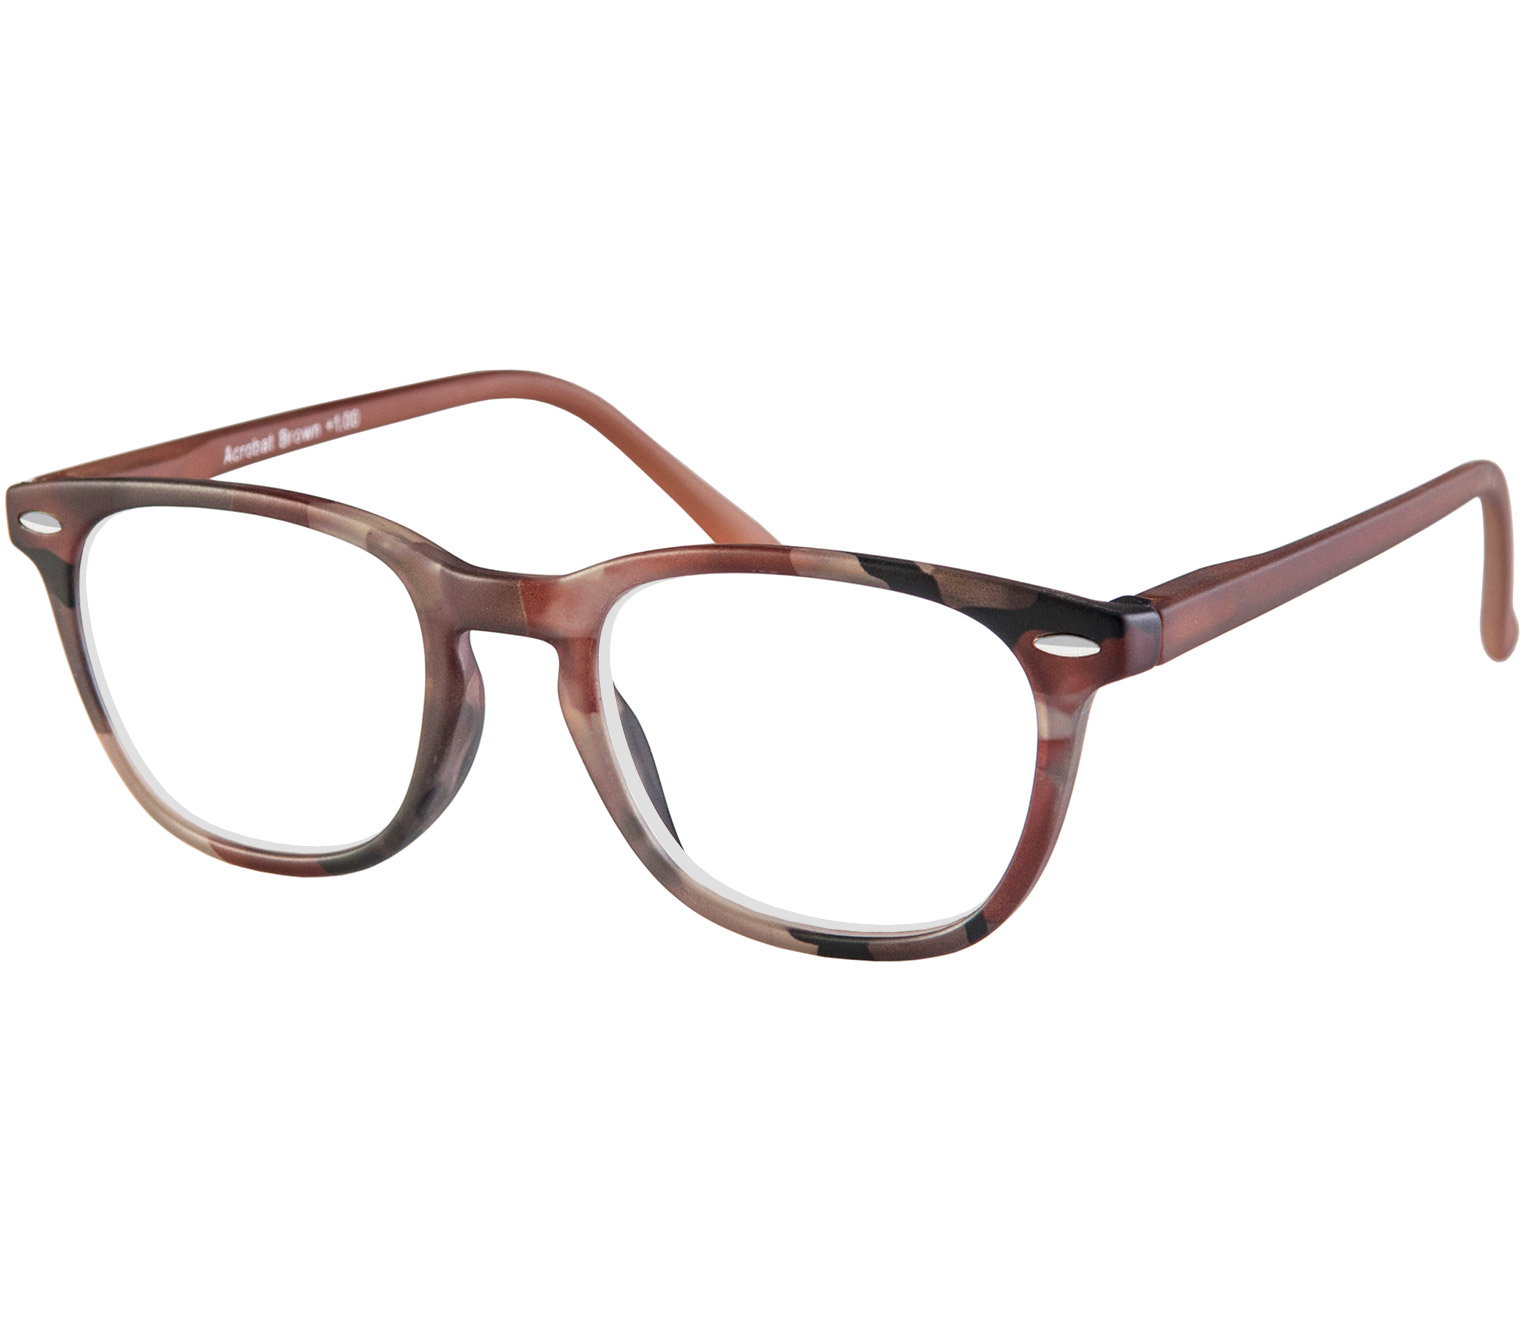 Main Image (Angle) - Acrobat (Brown) Retro Reading Glasses